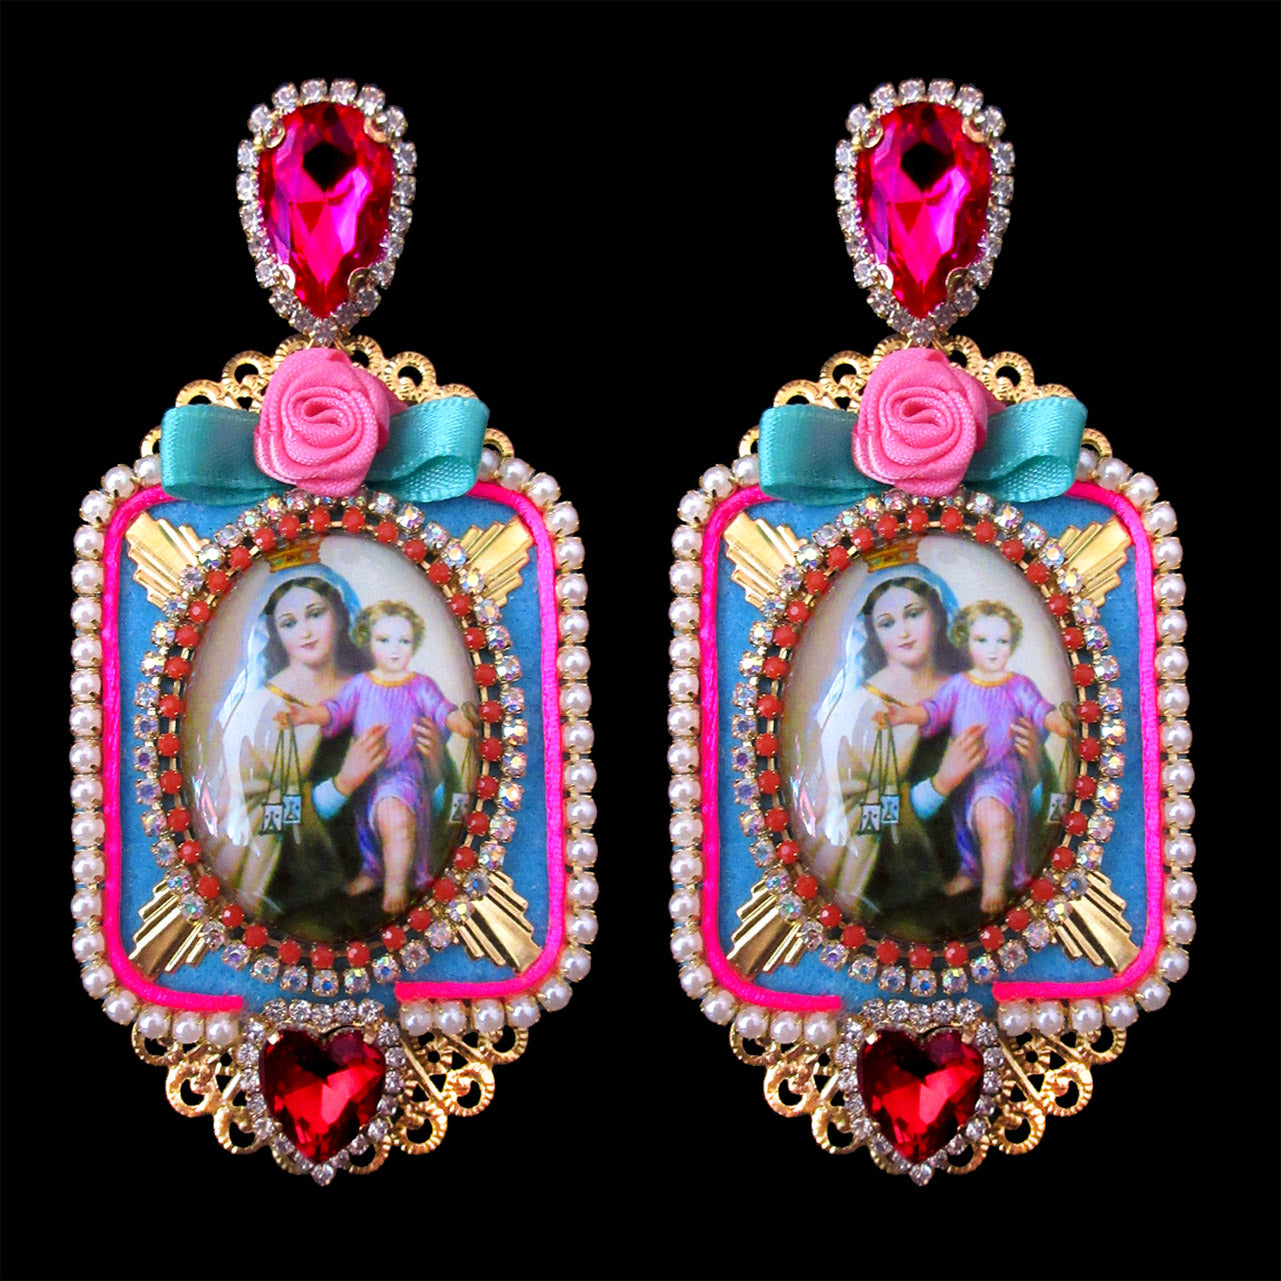 mouchkine jewelry handmade in france luxury couture earrings. A madonna under glass surrounded by pink and red swarovski rhinestones.